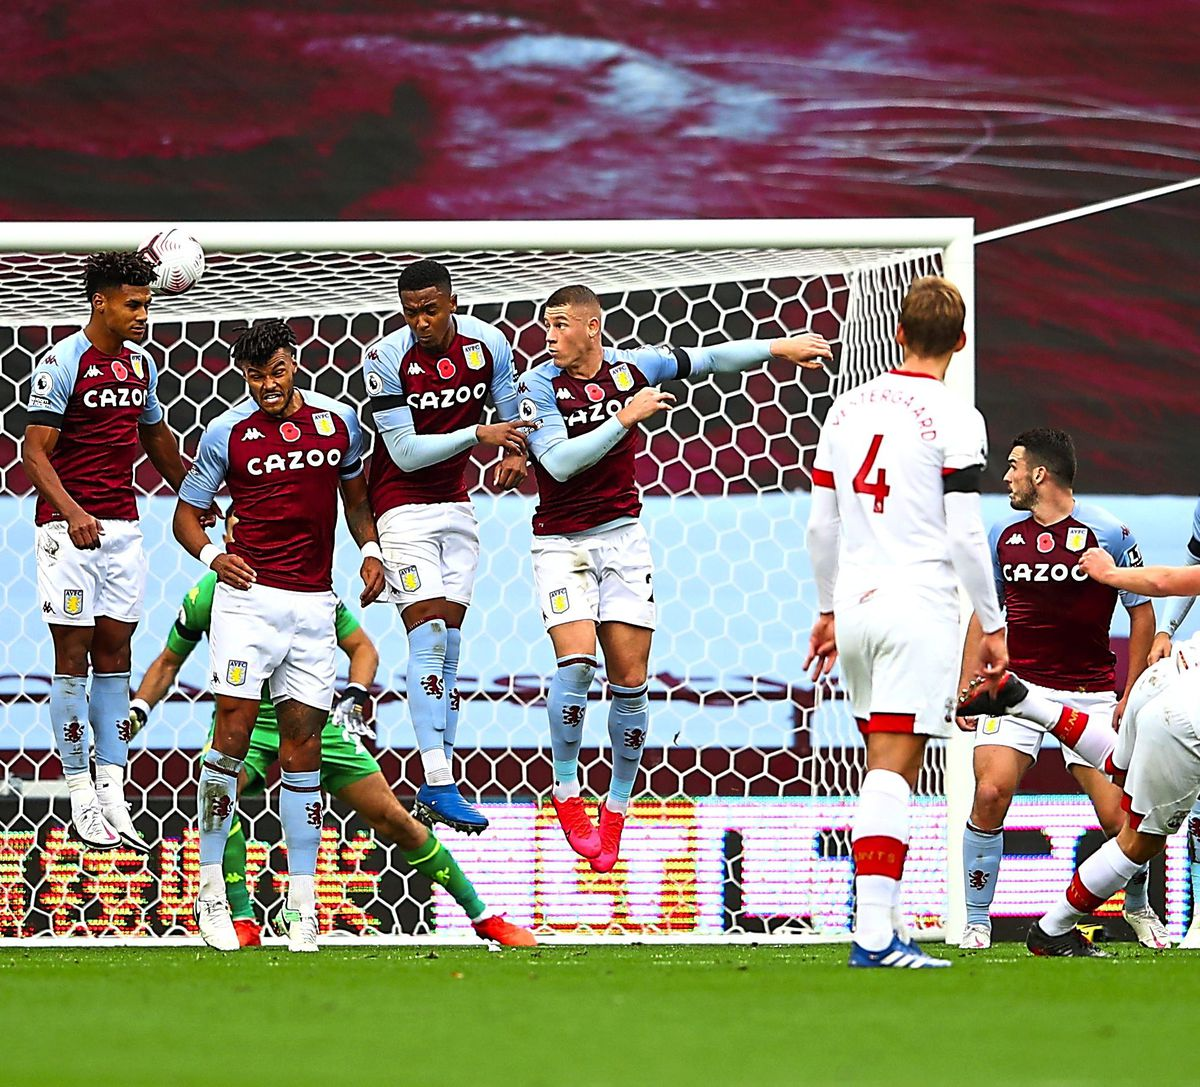 """Southampton's James Ward-Prowse (front right) scores his side's third goal of the game during the Premier League match at Villa Park, Birmingham. PA Photo. Picture date: Sunday November 1, 2020. See PA story SOCCER Villa. Photo credit should read: Michael Steele/PA Wire. RESTRICTIONS: EDITORIAL USE ONLY No use with unauthorised audio, video, data, fixture lists, club/league logos or """"live"""" services. Online in-match use limited to 120 images, no video emulation. No use in betting, games or single club/league/player publications."""